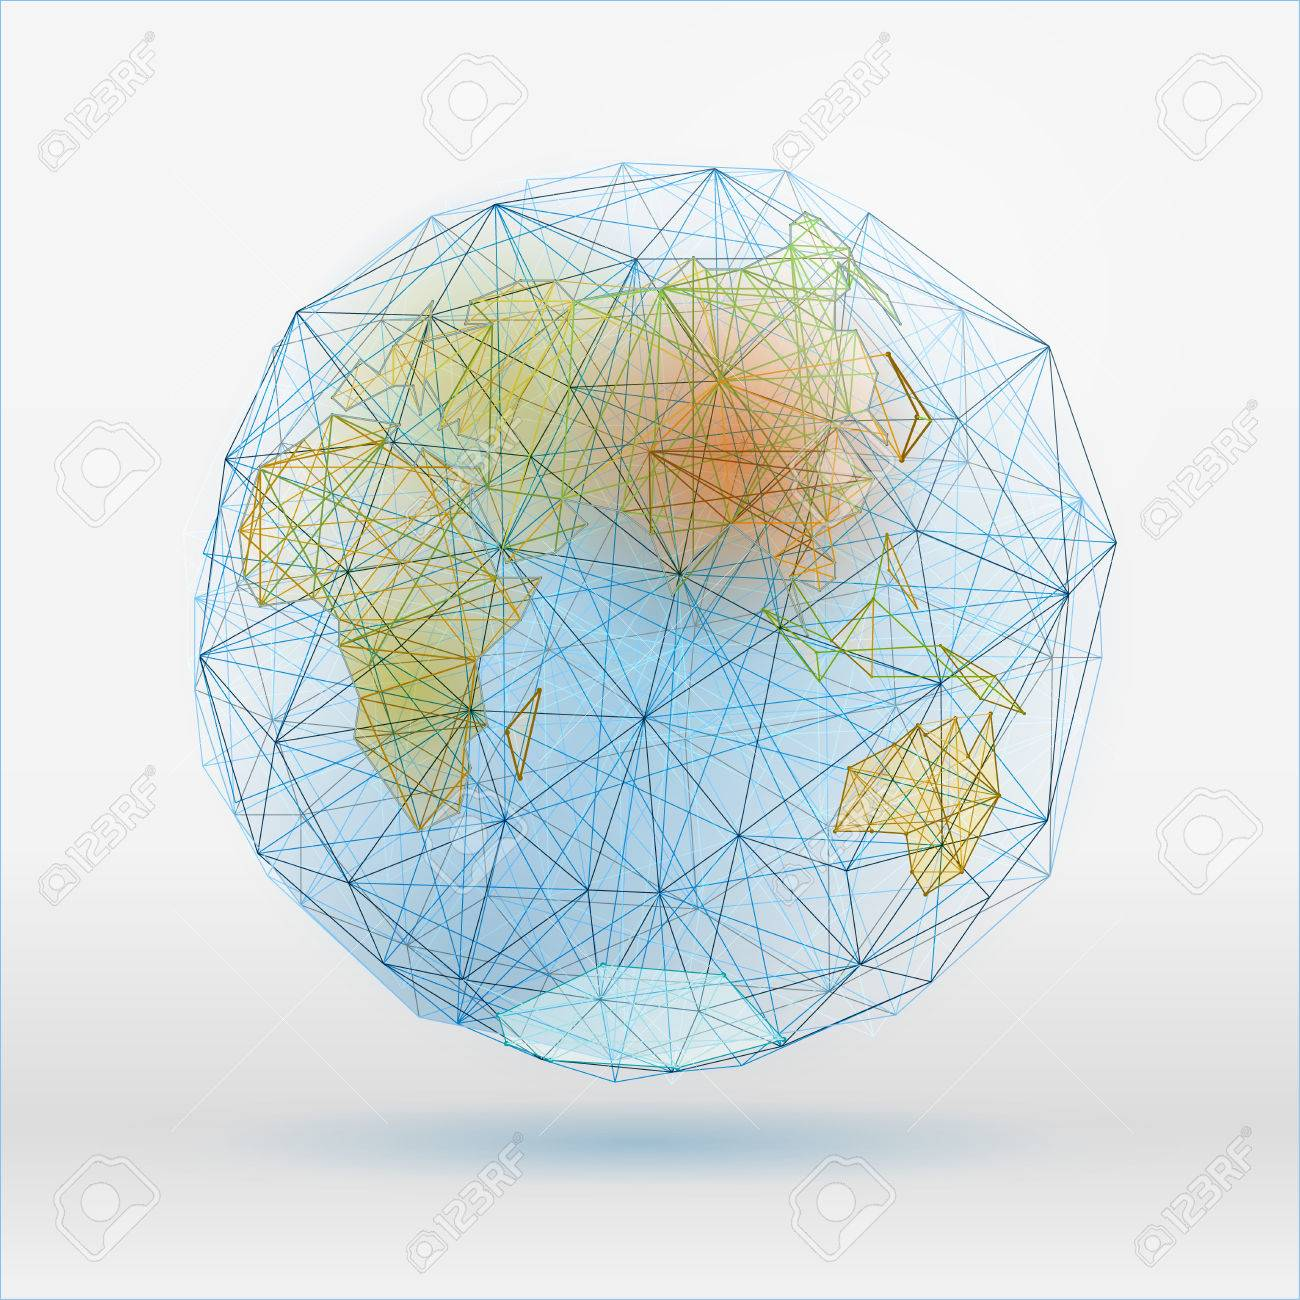 Abstract polygonal world map with dots connecting lines network abstract polygonal world map with dots connecting lines network connections digital globe concept gumiabroncs Choice Image